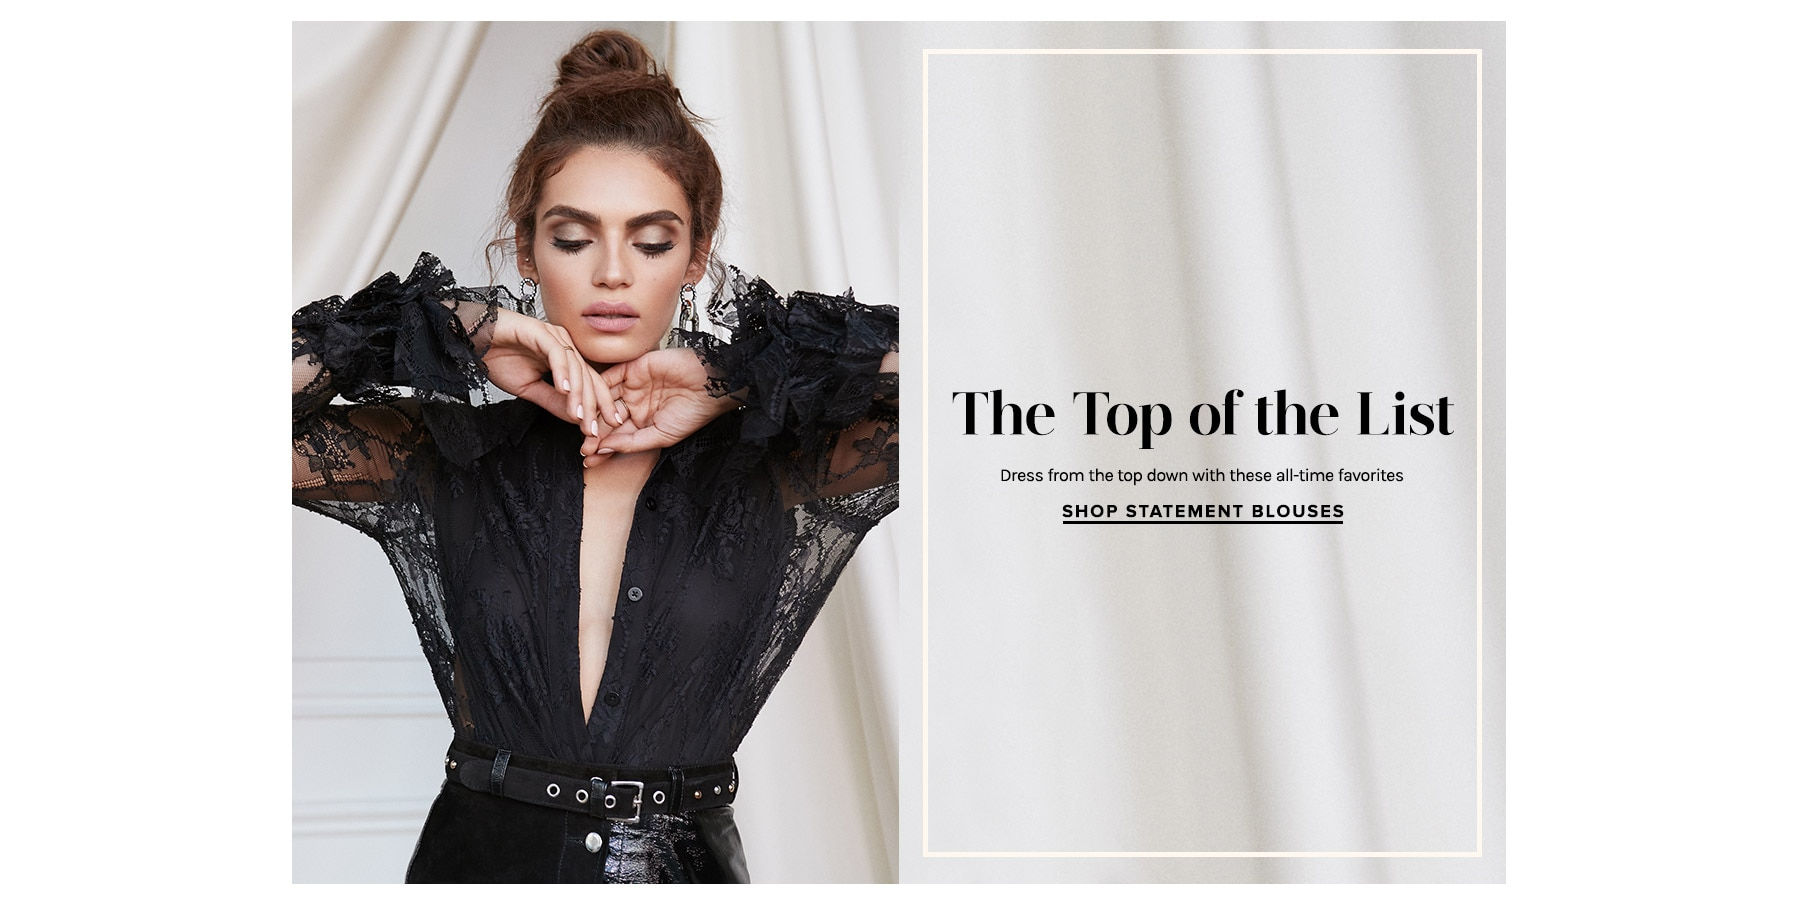 The Top Of The List. Dress from the top down with these all-time favorites. Shop Statement Blouses